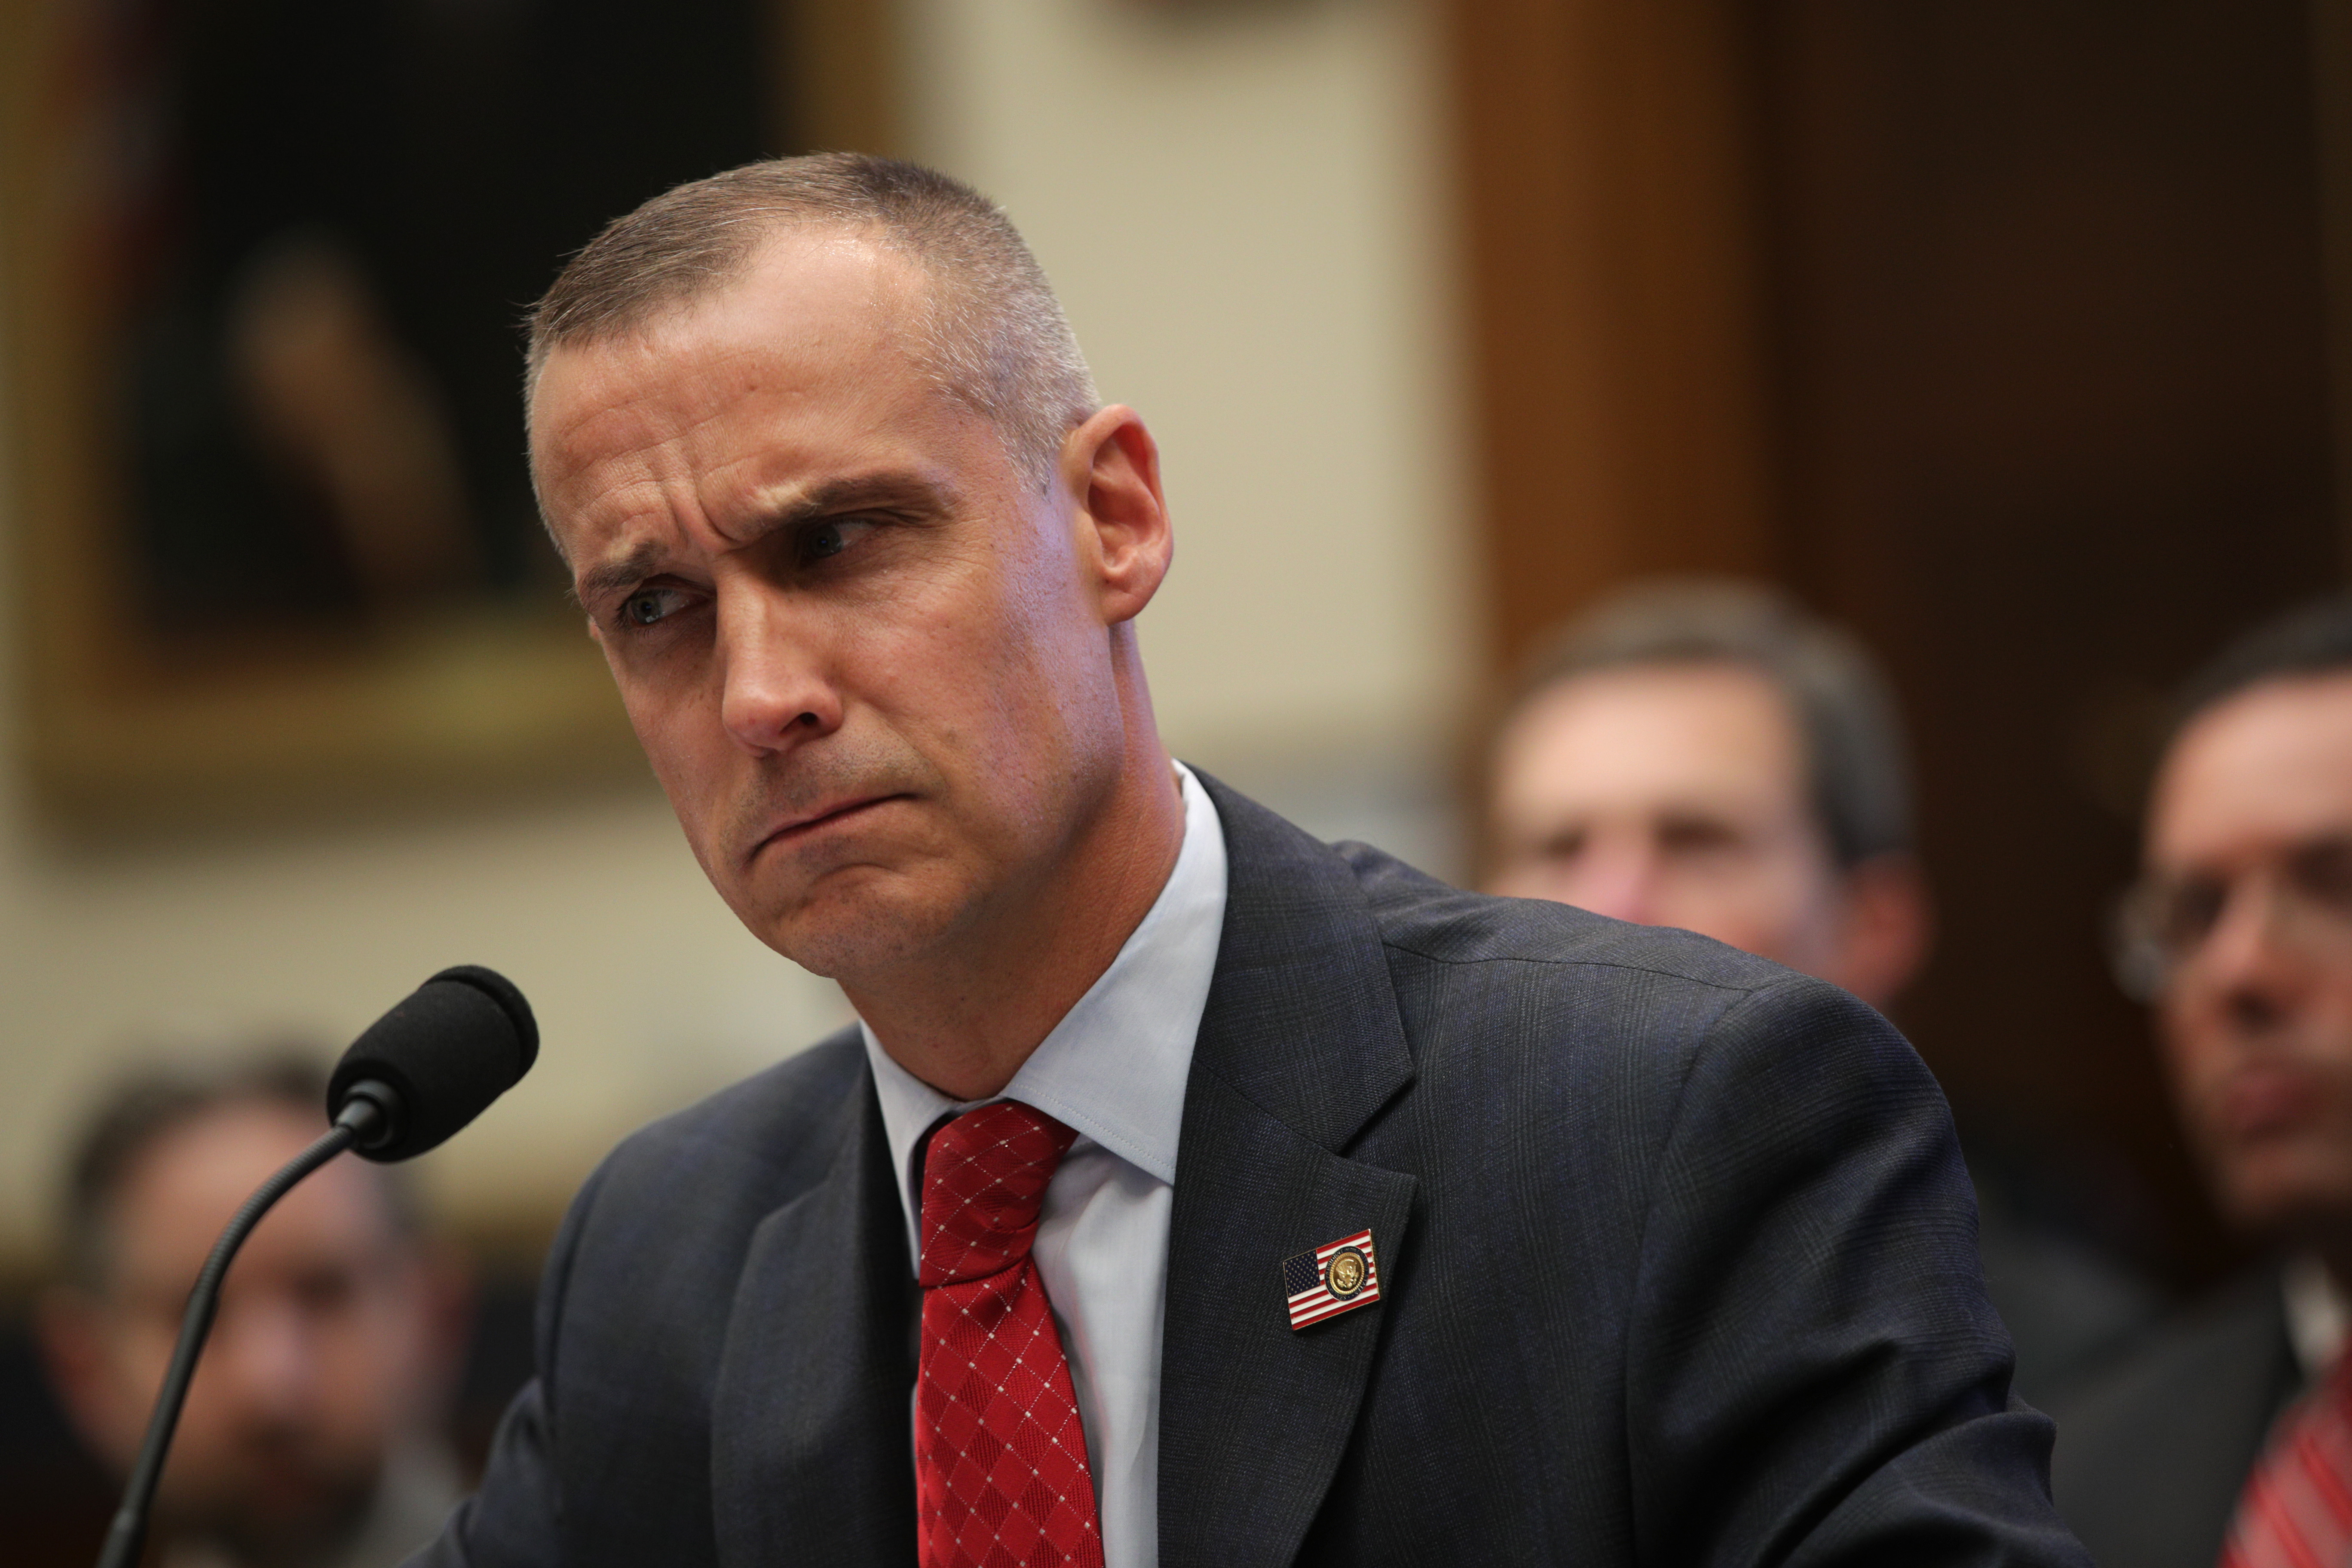 Corey Lewandowski confessed to gaslighting the press. CNN booked him hours later anyway.